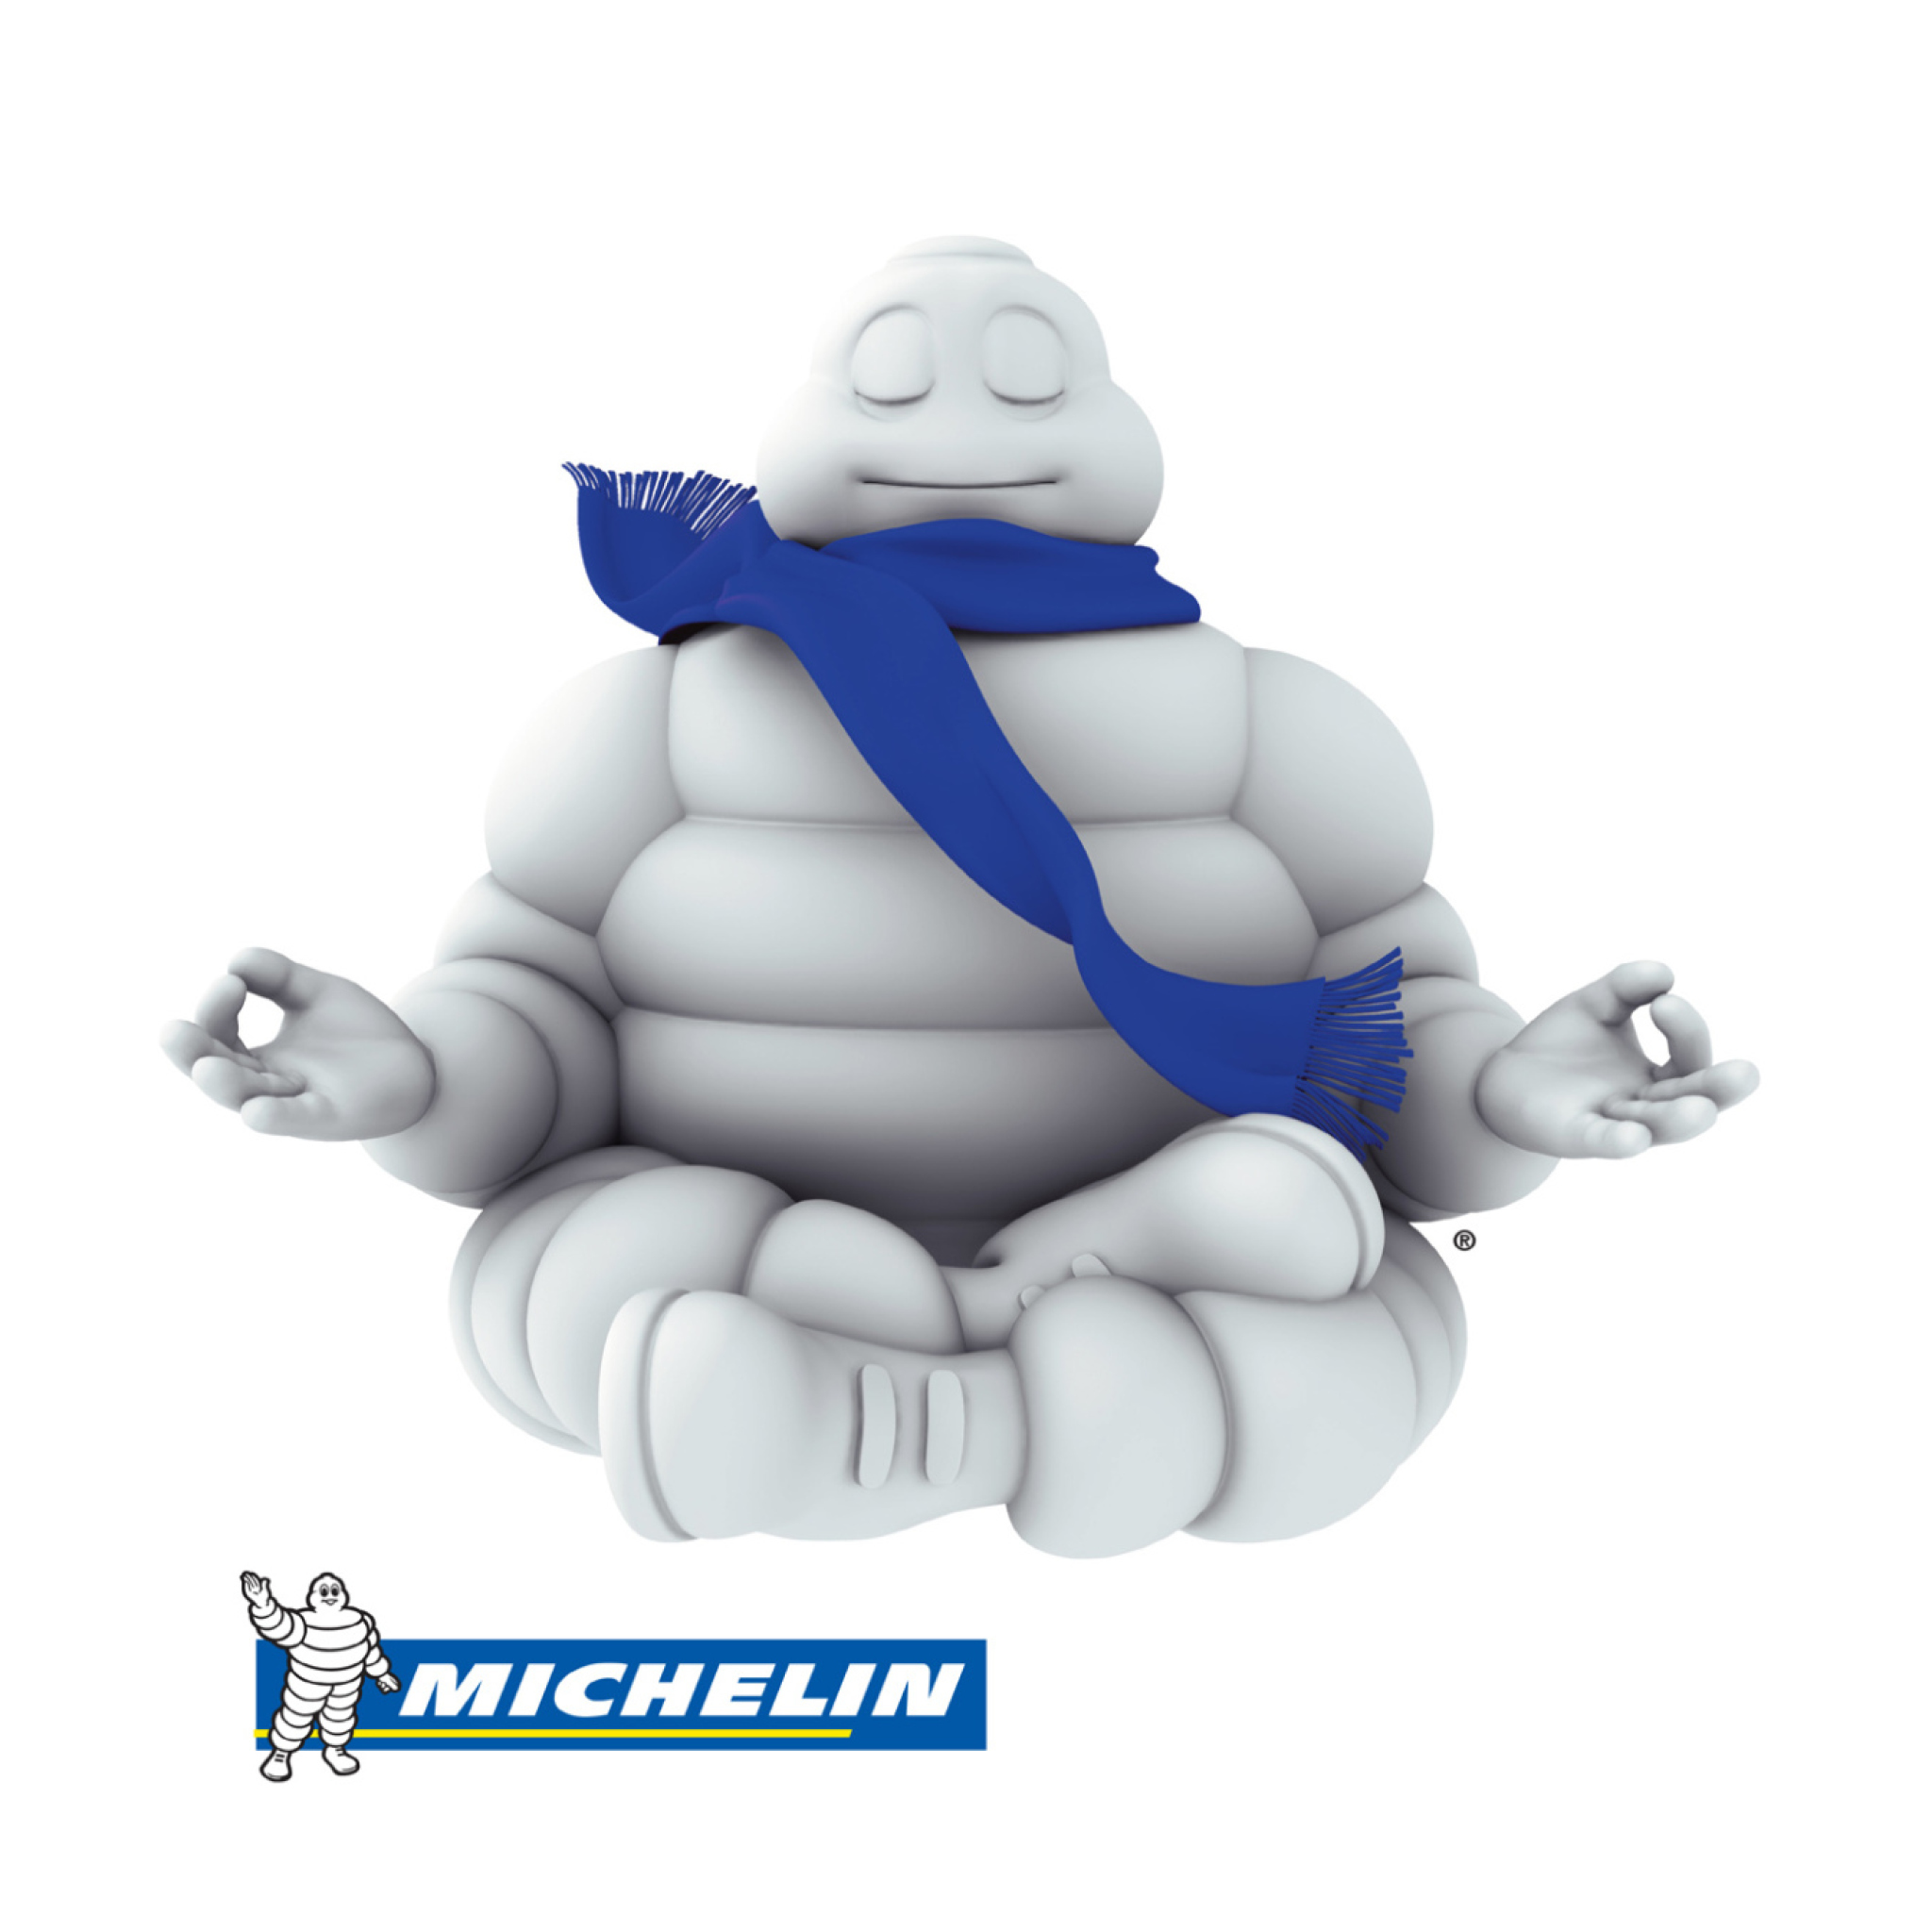 Michelin wallpaper 2048x2048